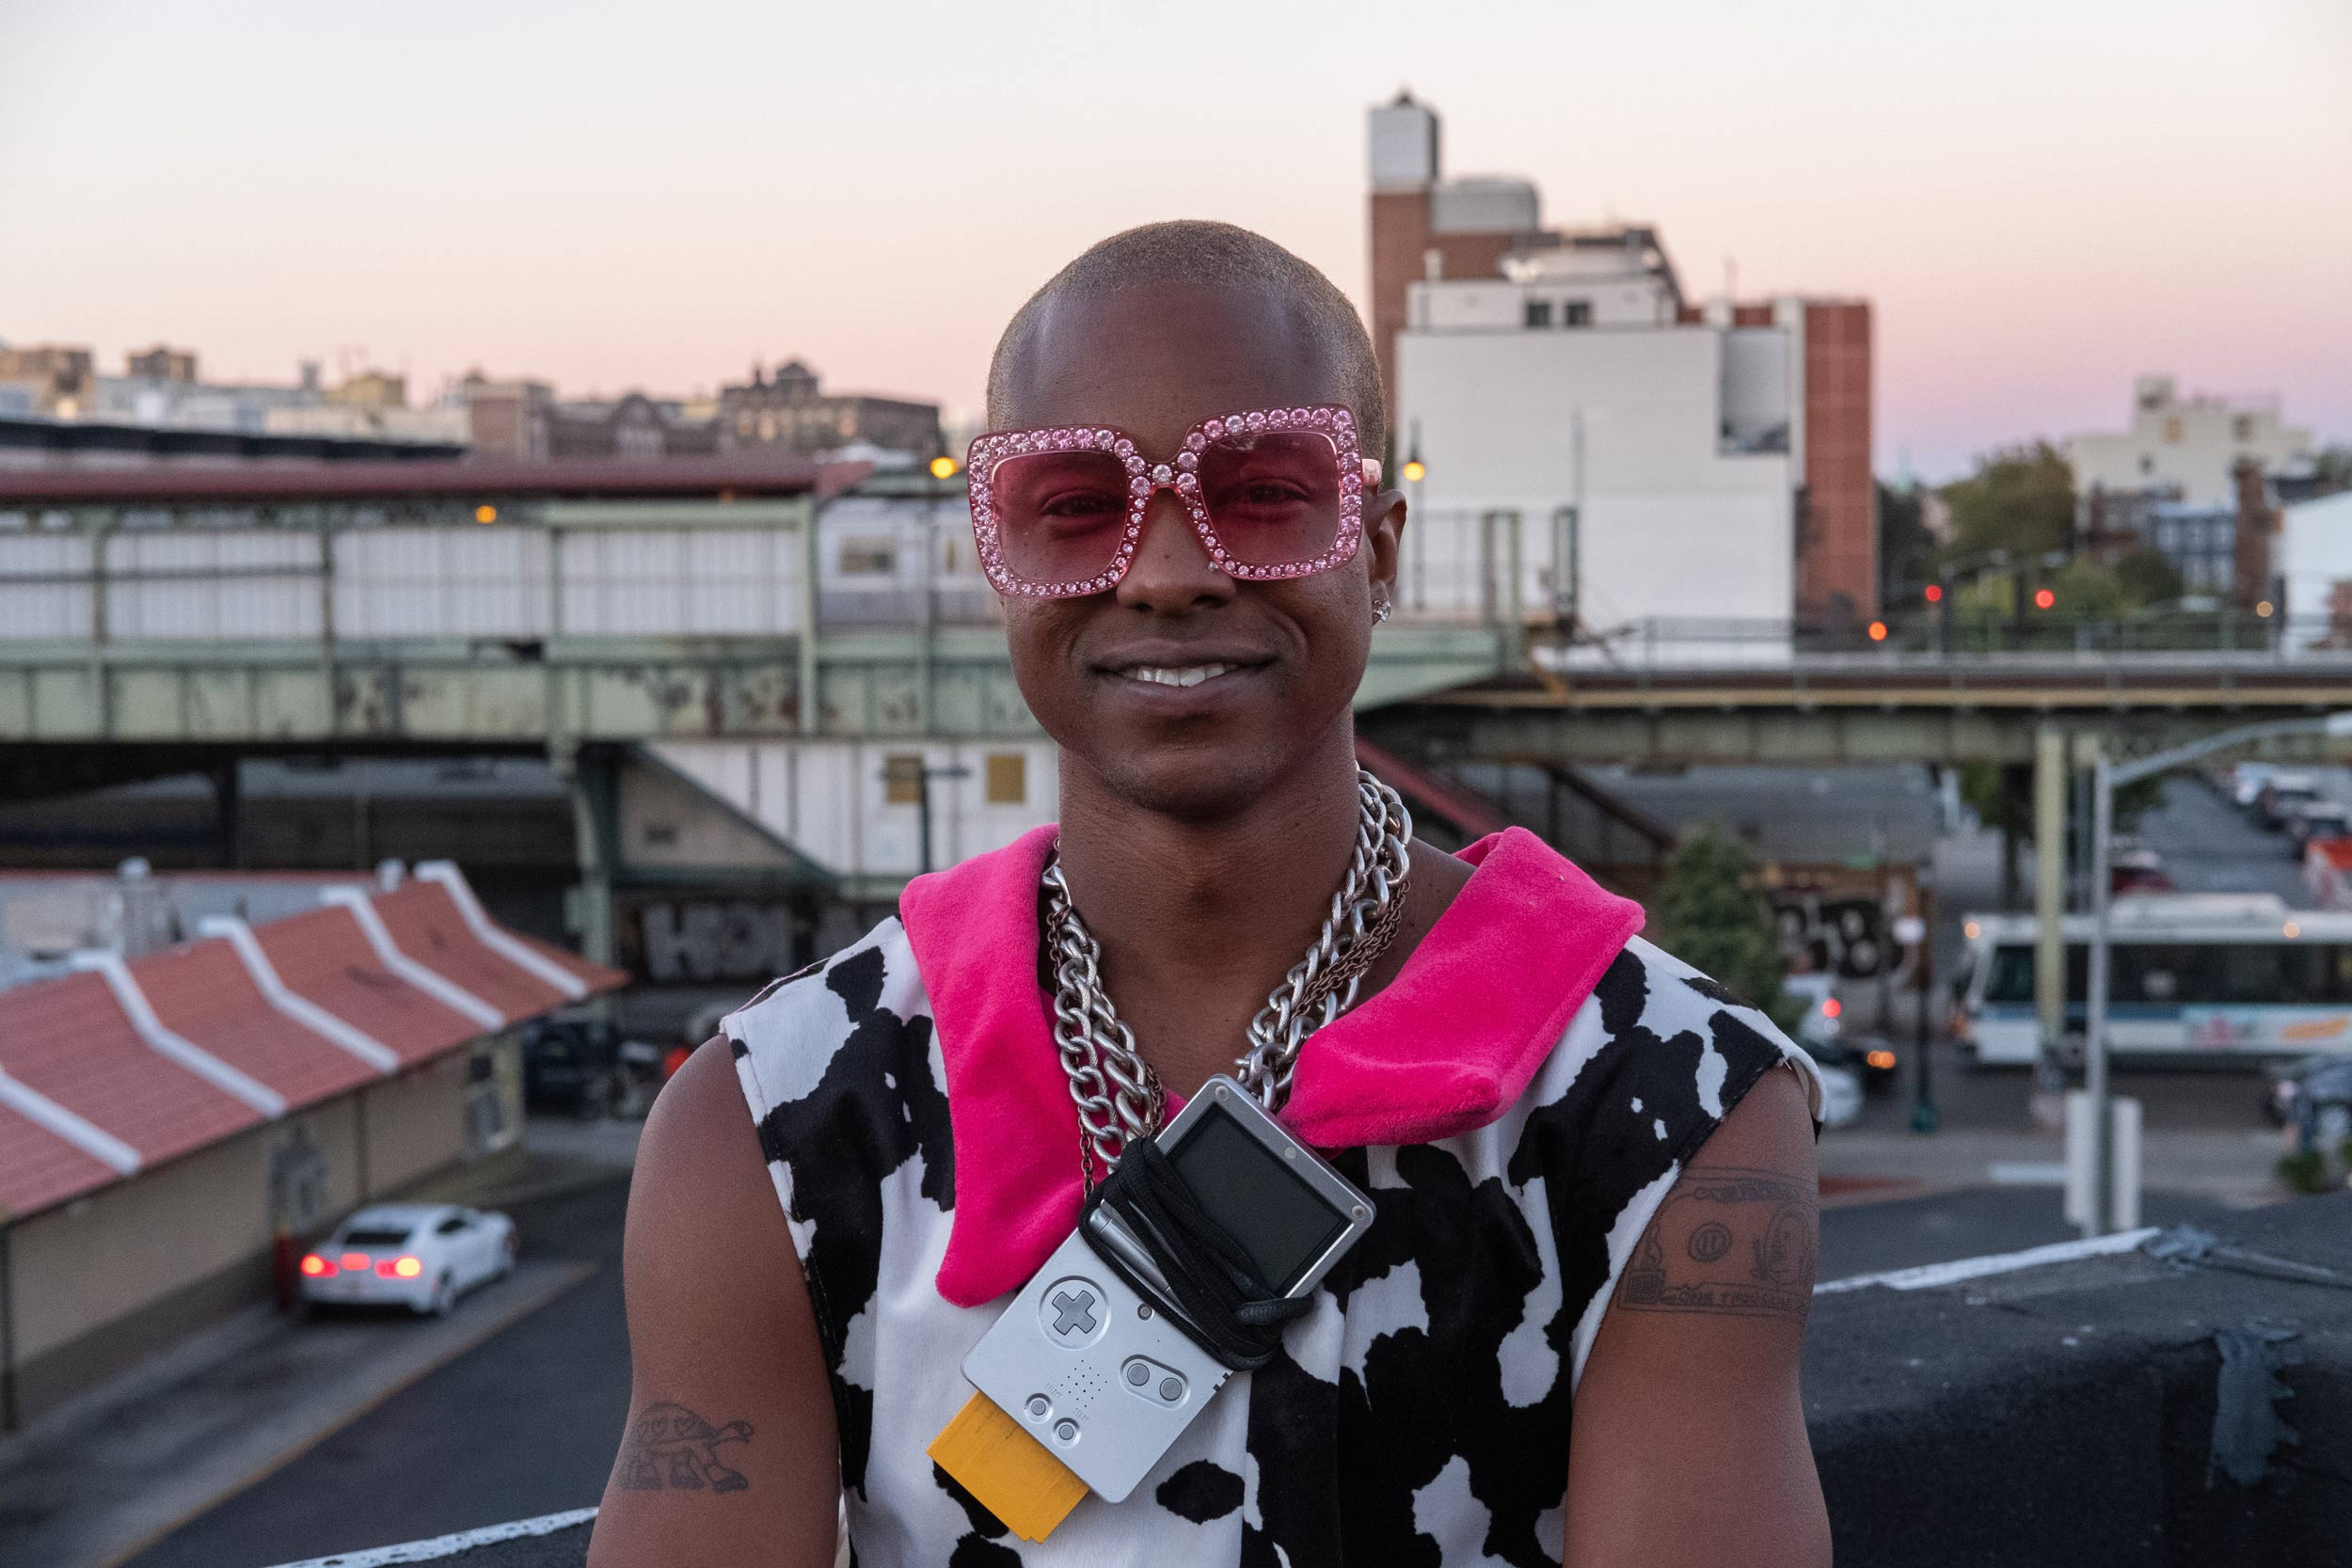 UBI, M4A, Radical Love: Brooklyn's Paperboy Prince is a politician for the people